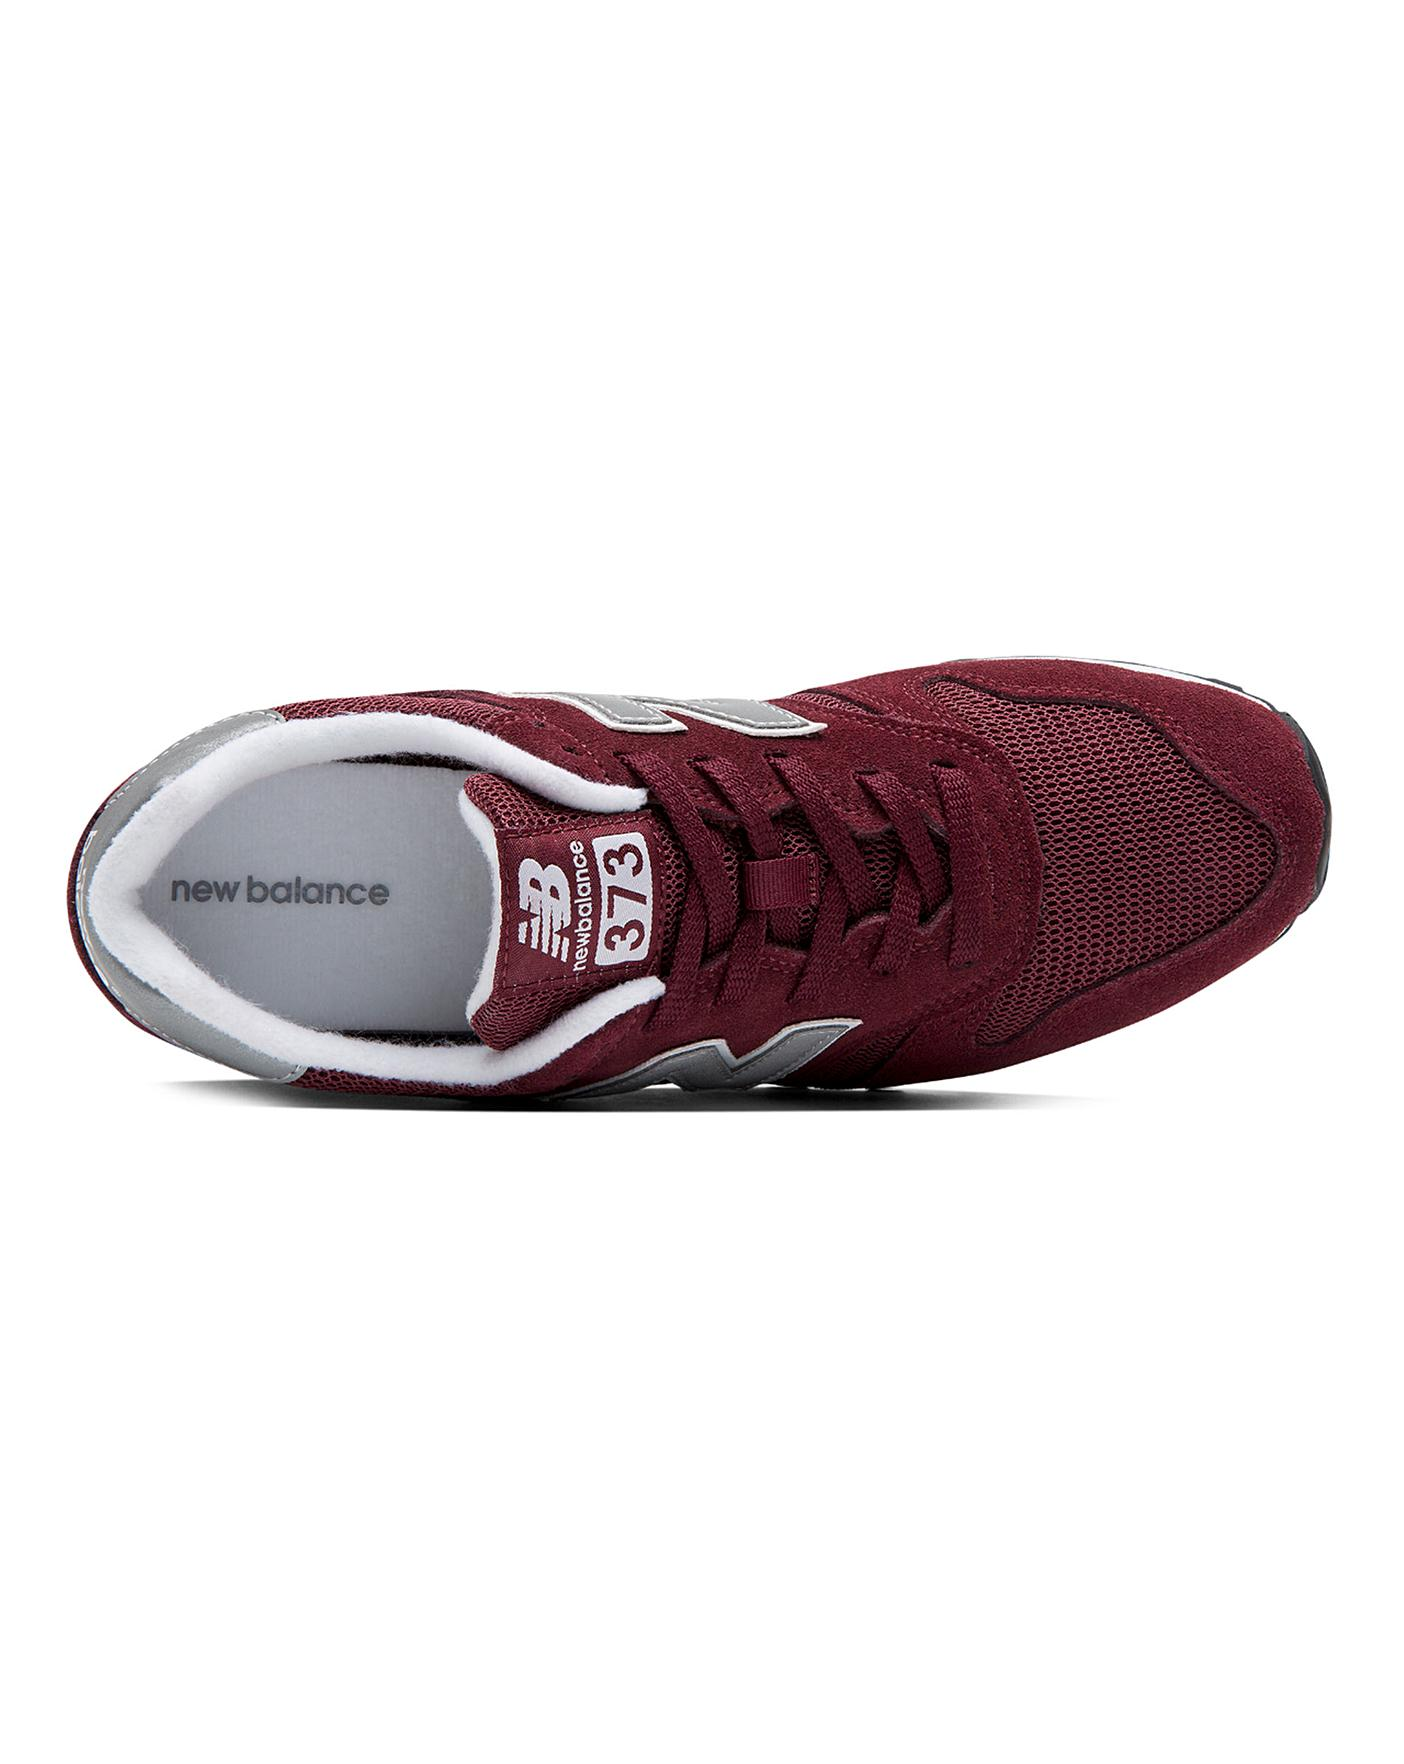 premium selection 6a612 22306 New Balance 373 Trainers